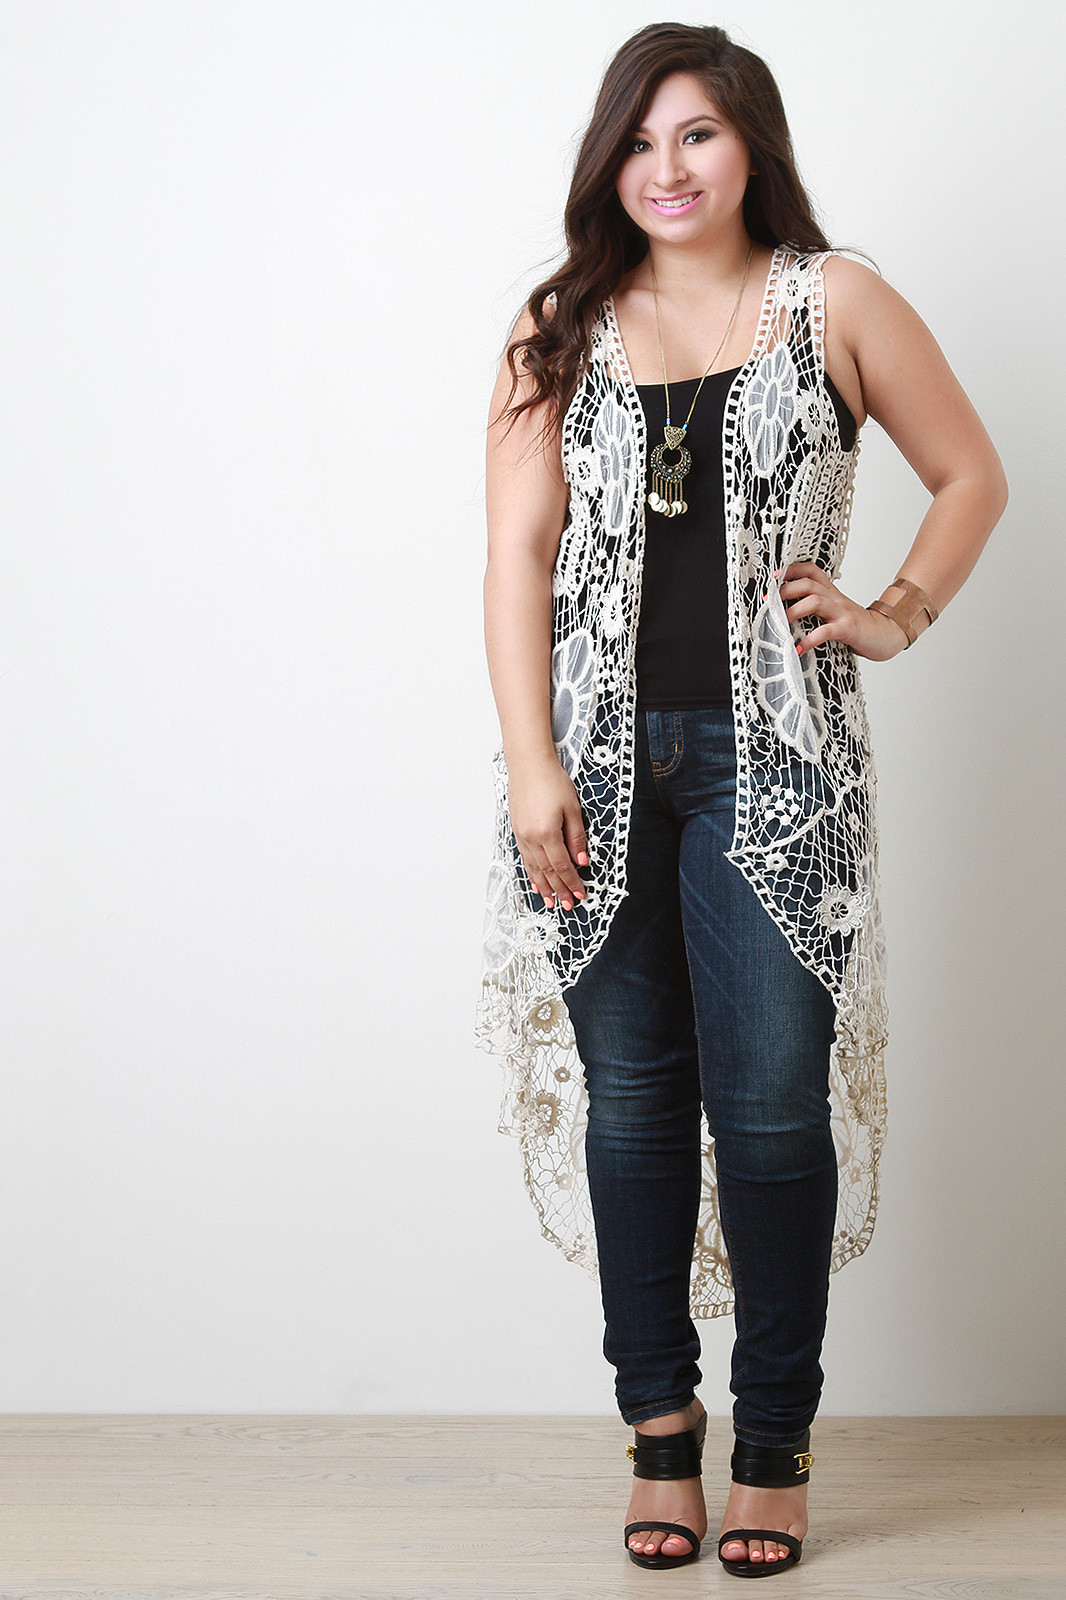 Plus Size Crochet Vest Elegant Plus Sizes Bohemian Floral Knit Crochet Vest Of Fresh 49 Pics Plus Size Crochet Vest